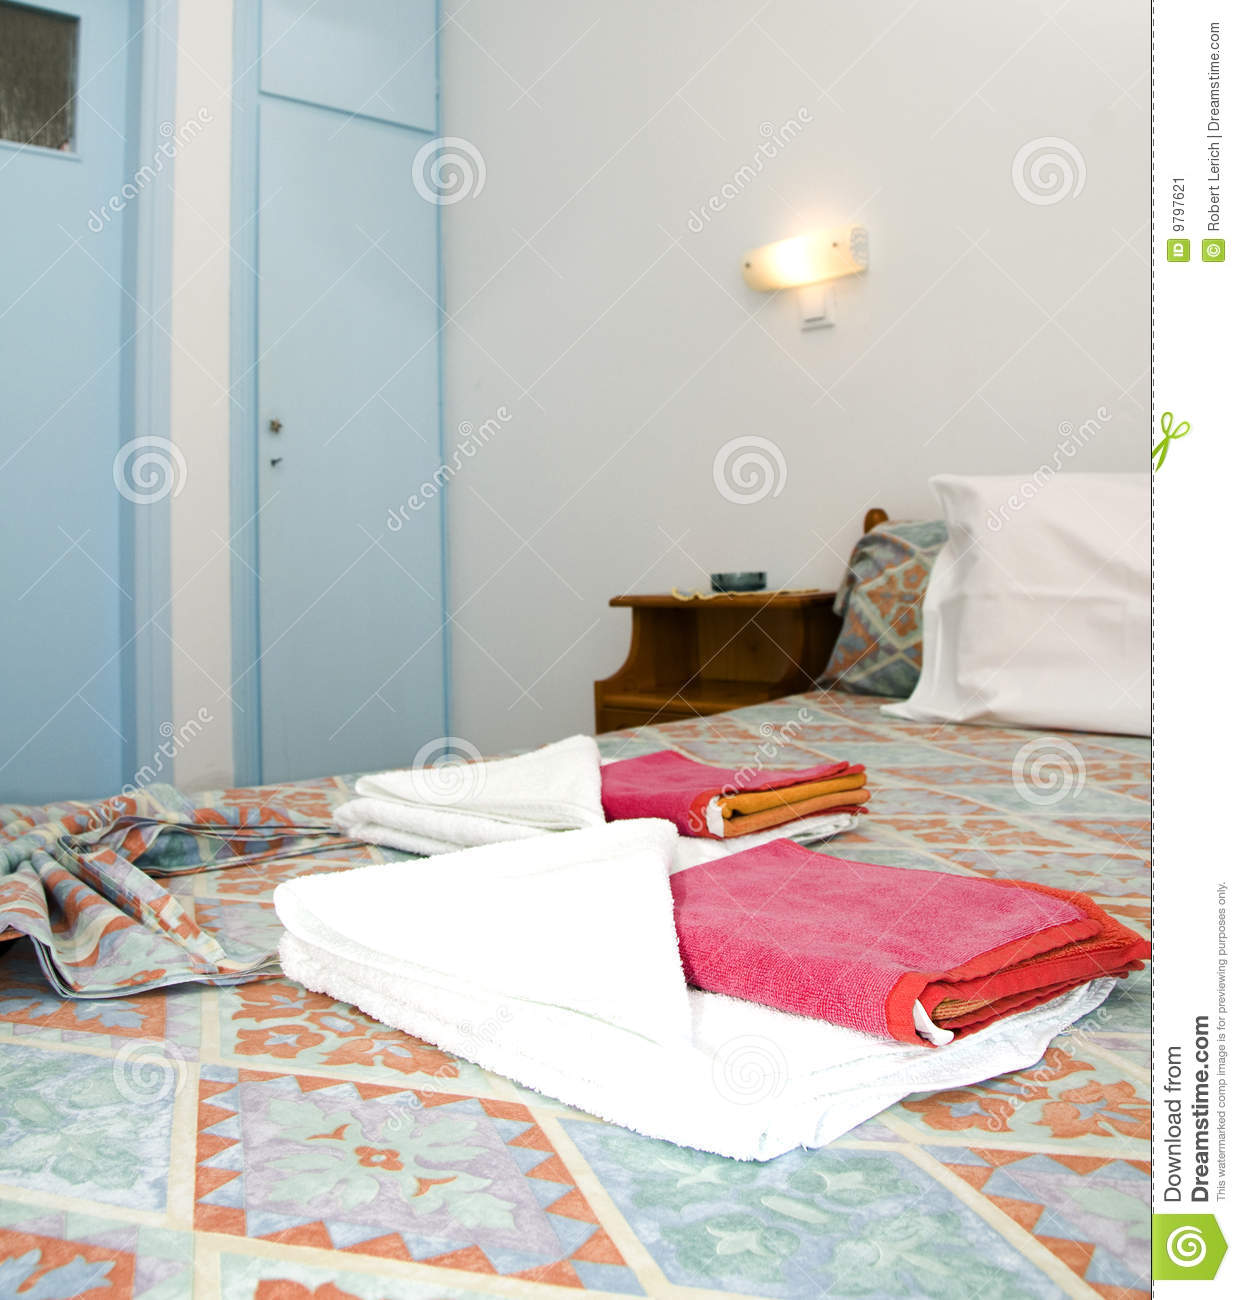 Studio House For Rent: Room In Greek Island Studio Apartment For Rent Stock Image